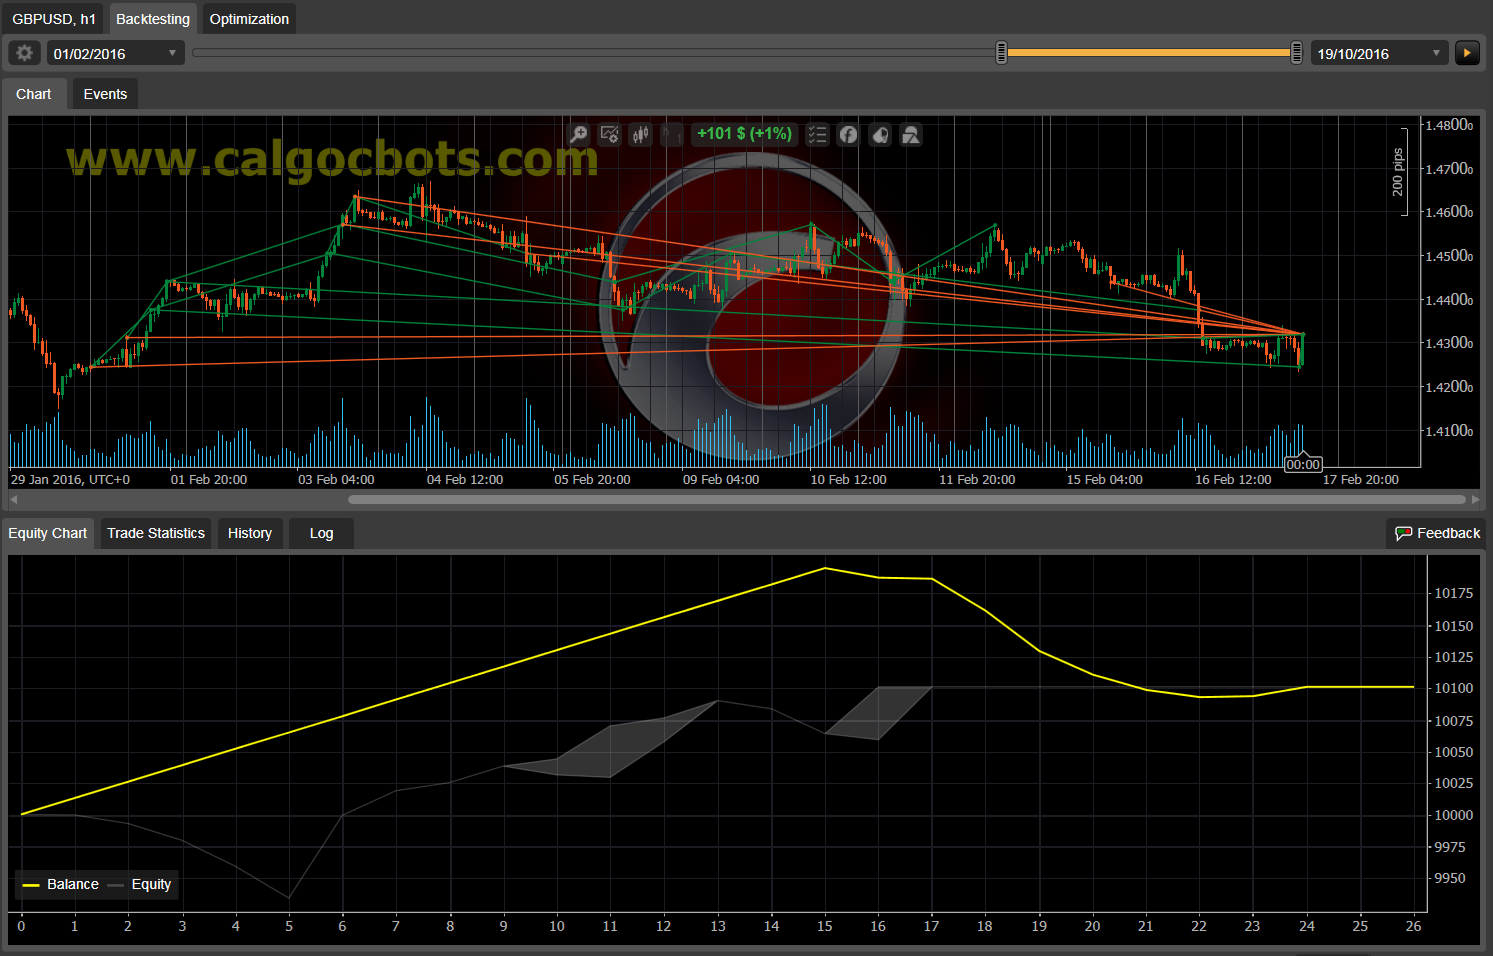 Dual Grid Hedge GBP USD 1h cAlgo cBots cTrader 1k 100 50 100 - 07